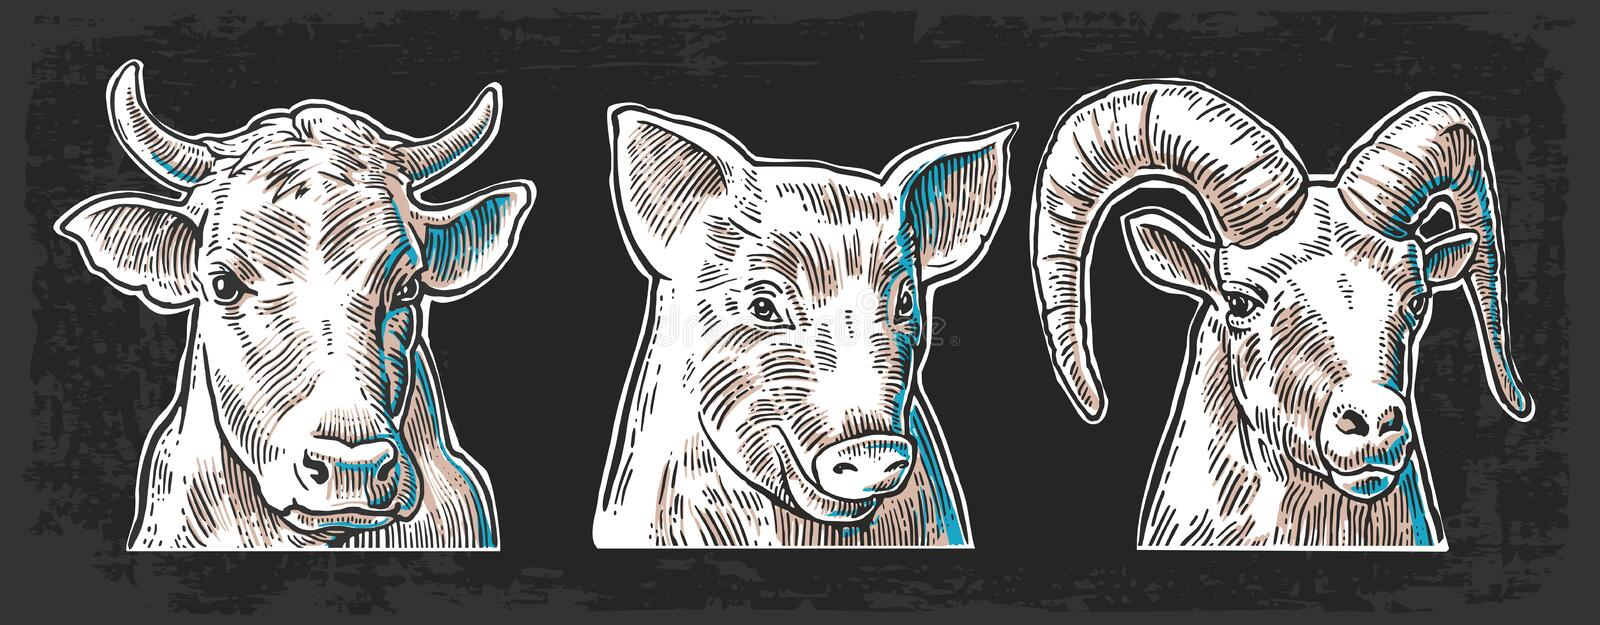 Farm animals icon set. Pig, cow and goat heads isolated on dark background. vector illustration